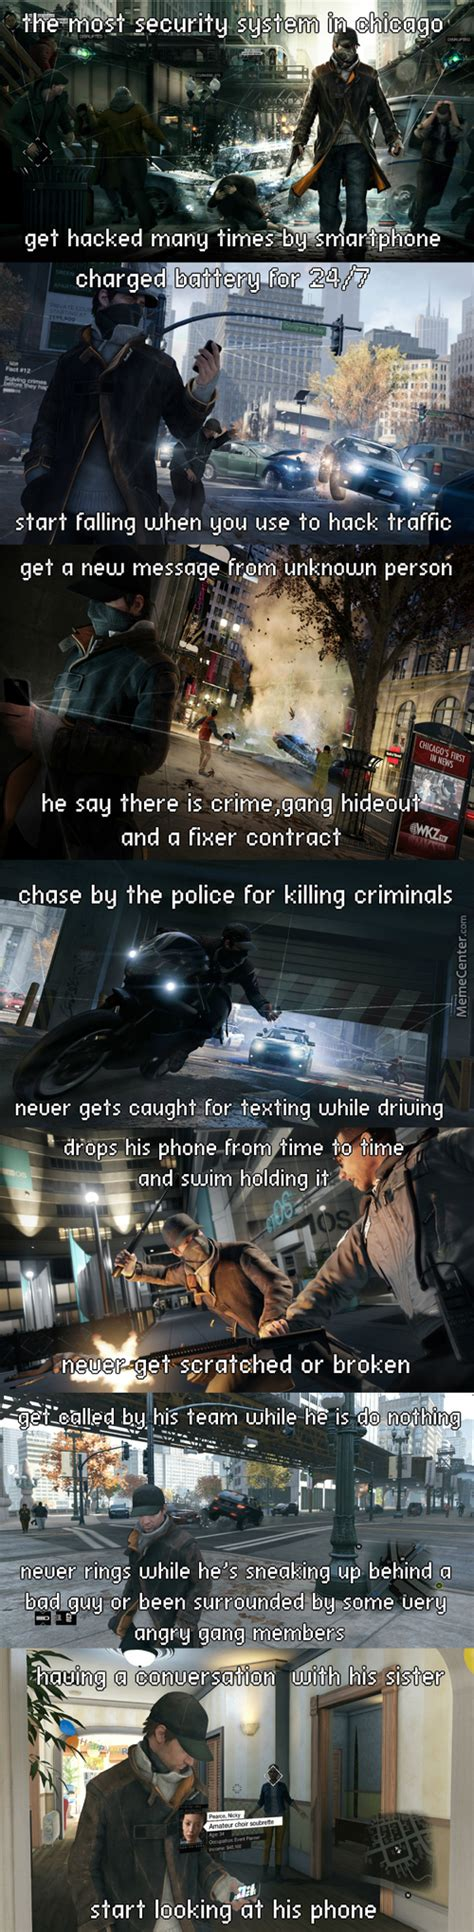 Watch Dogs Meme - watch dogs memes best collection of funny watch dogs pictures